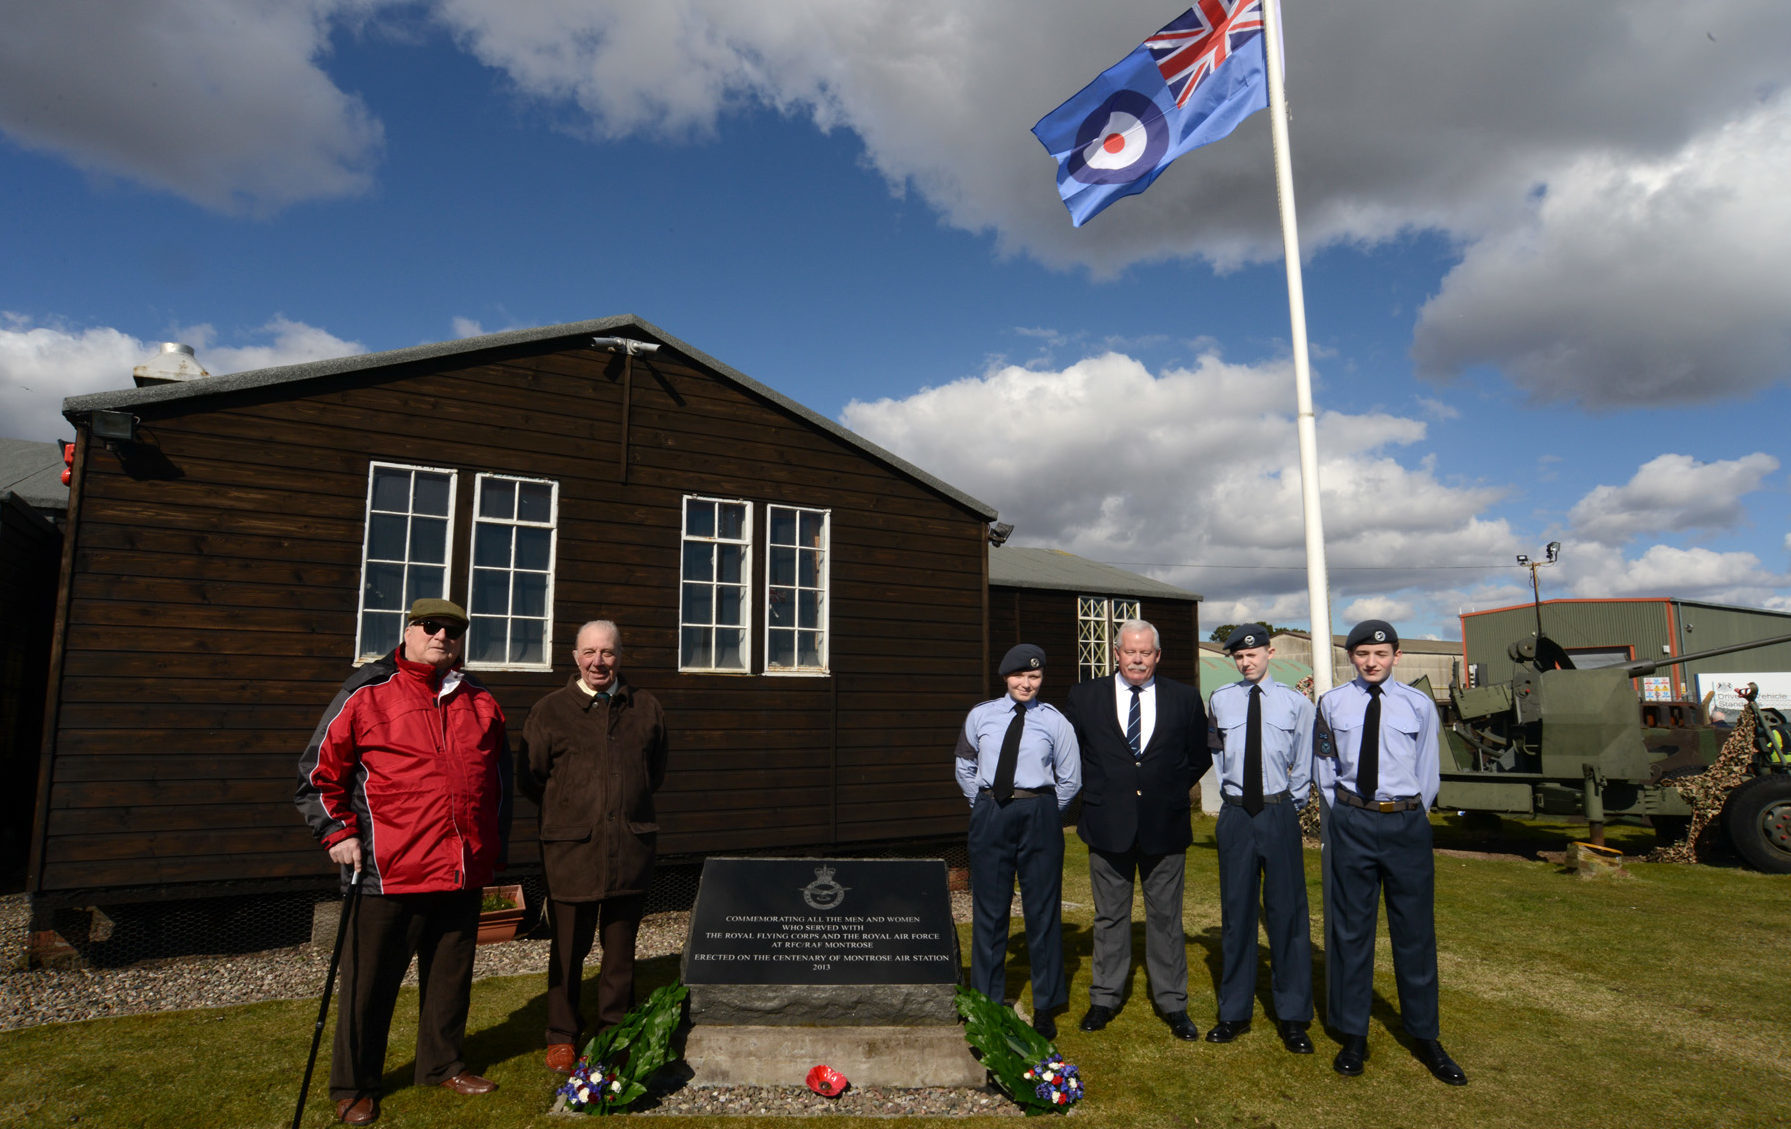 Wreaths were laid at Montrose to mark the centenary of the formation of the RAF